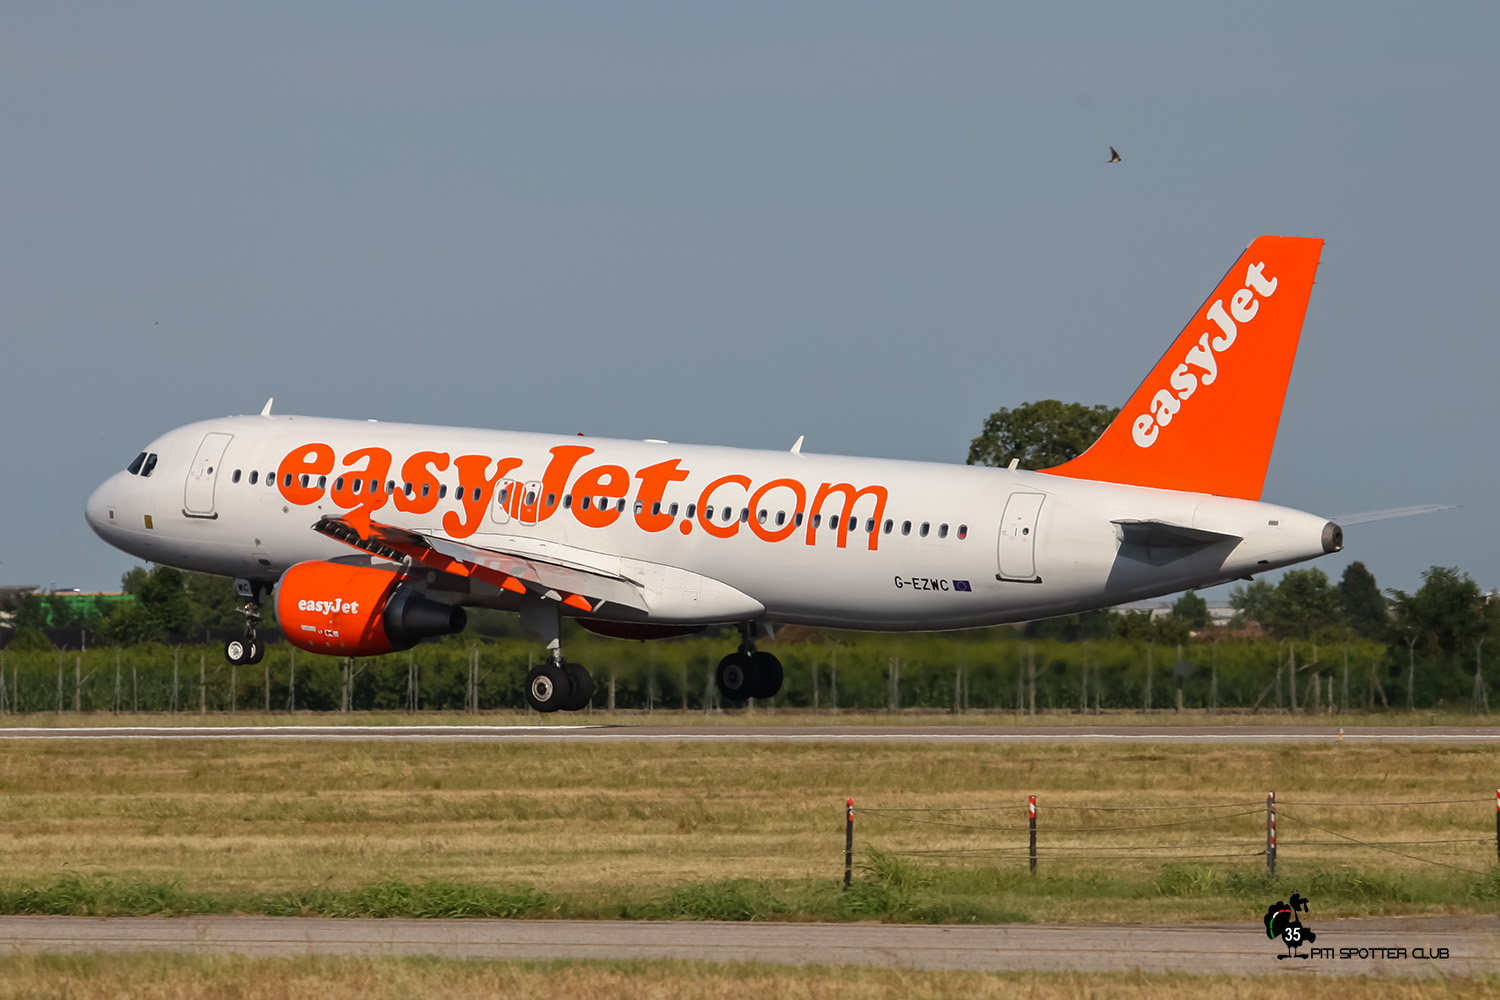 G-EZWC A320-214 5236 EasyJet Airline